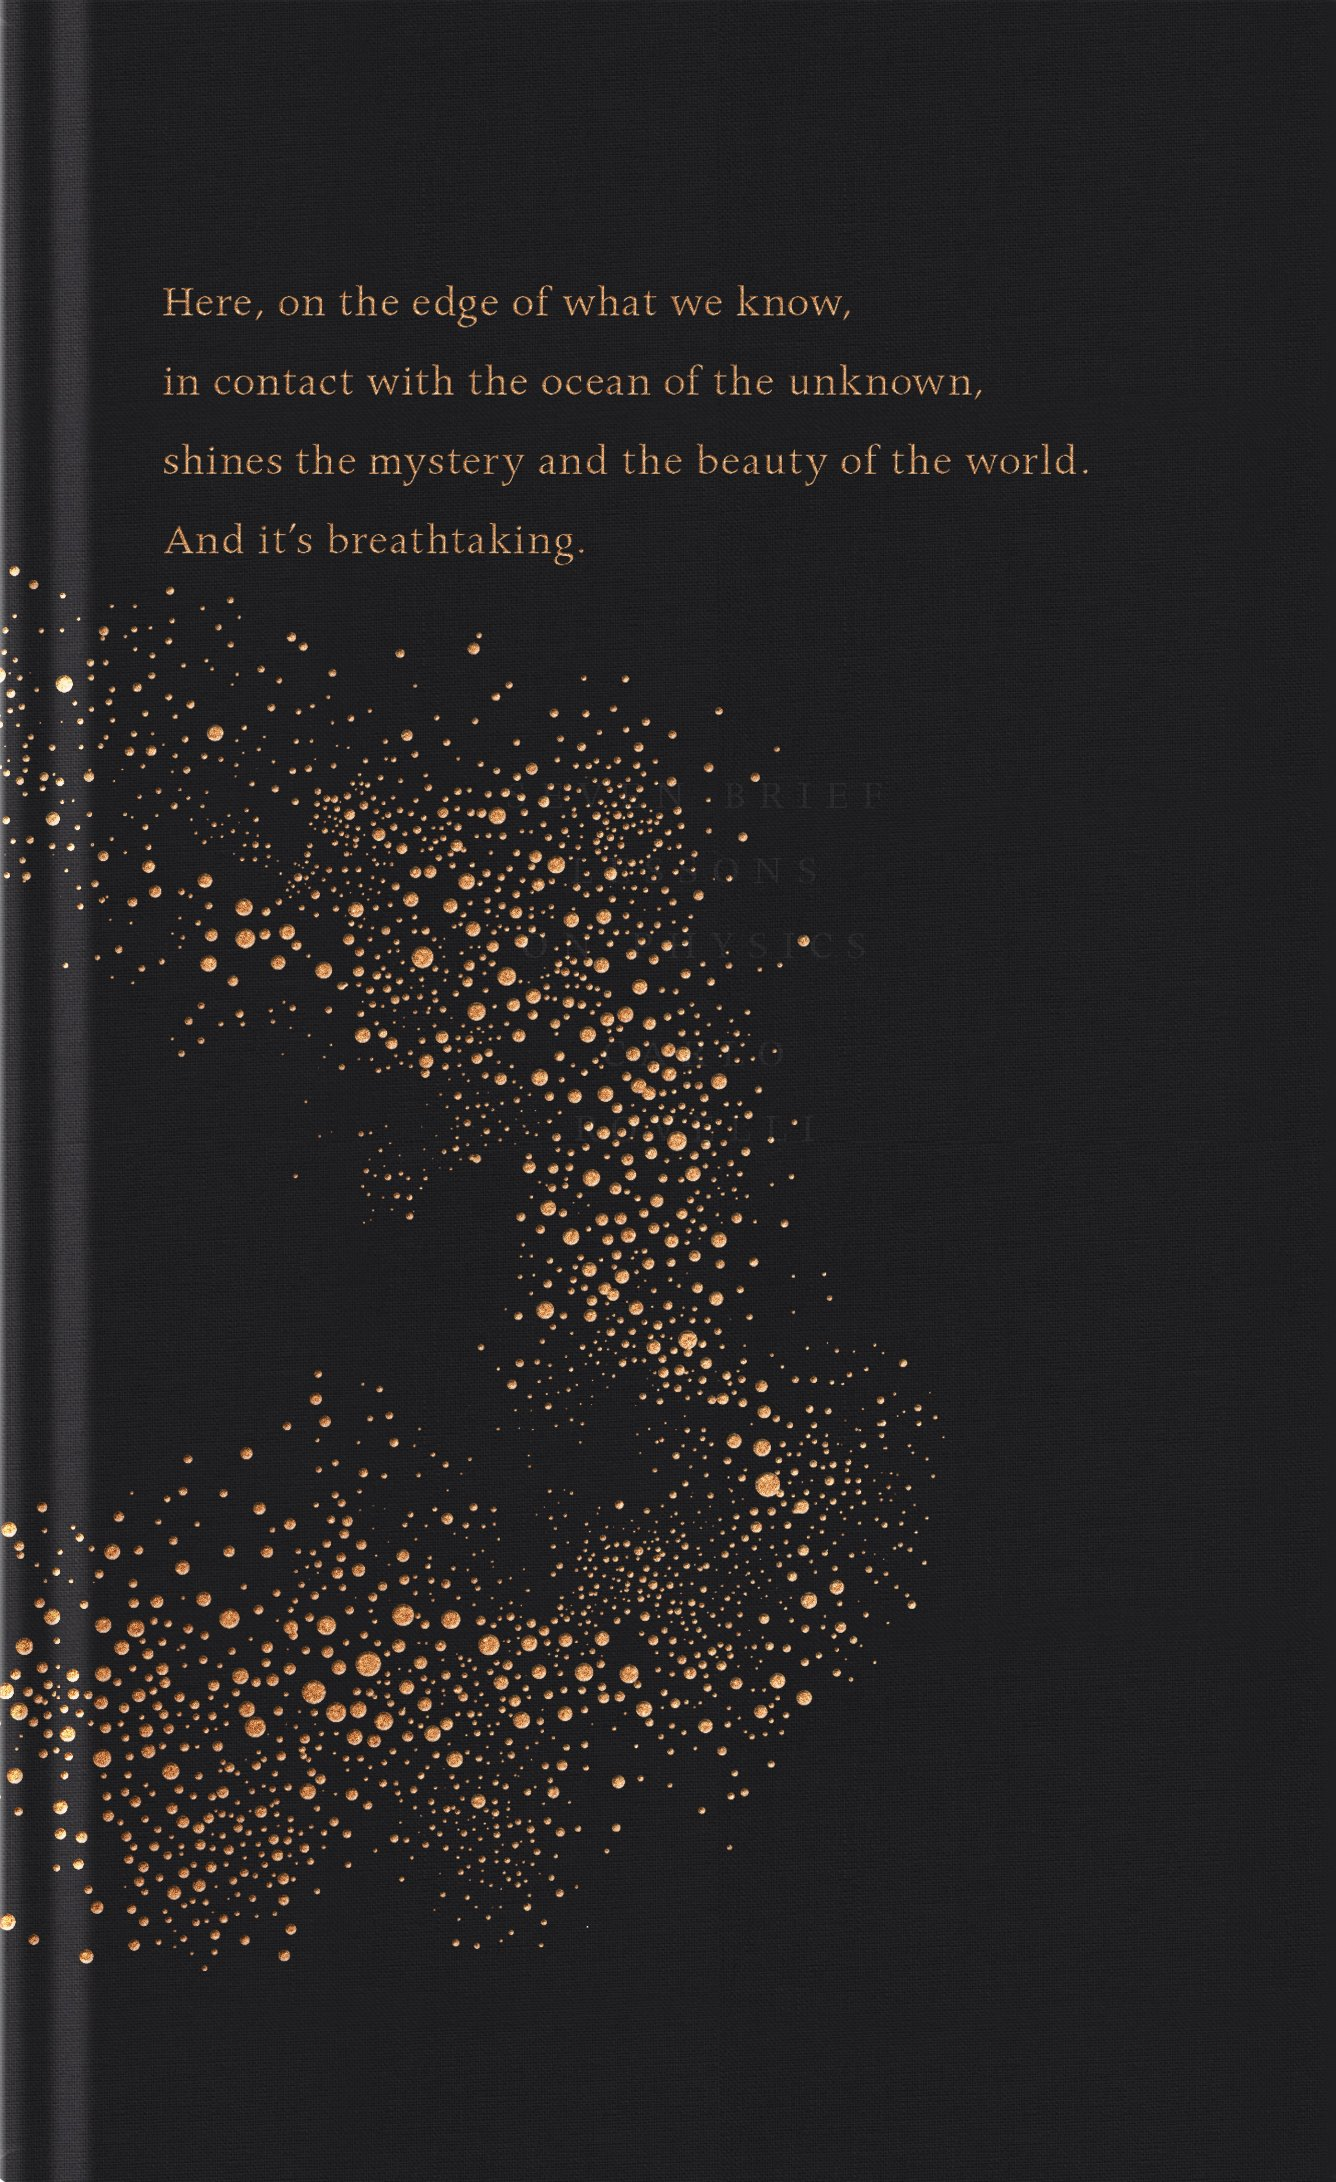 Seven Brief Lessons on Physics: Amazon.co.uk: Carlo Rovelli: 9780241235966:  Books